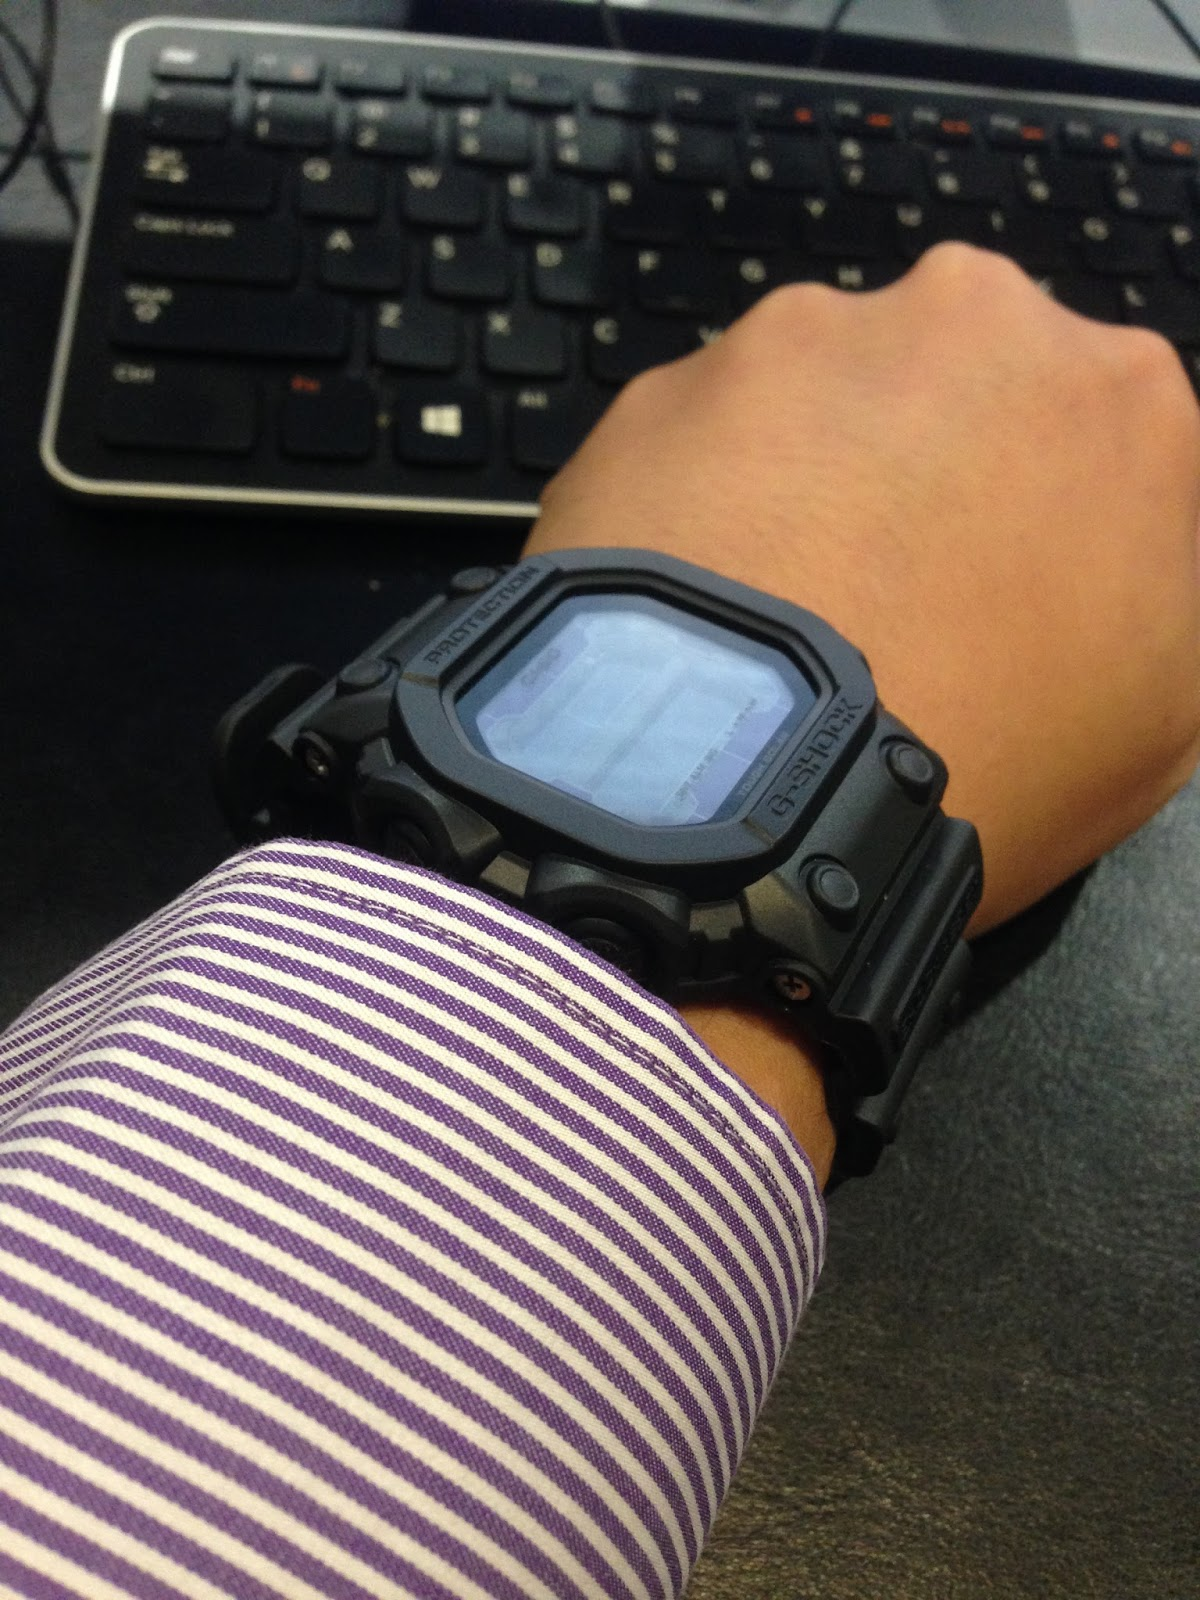 c347be979e2c Let s face it  this watch is big which limits its usage in formal  functions. As it was advertised